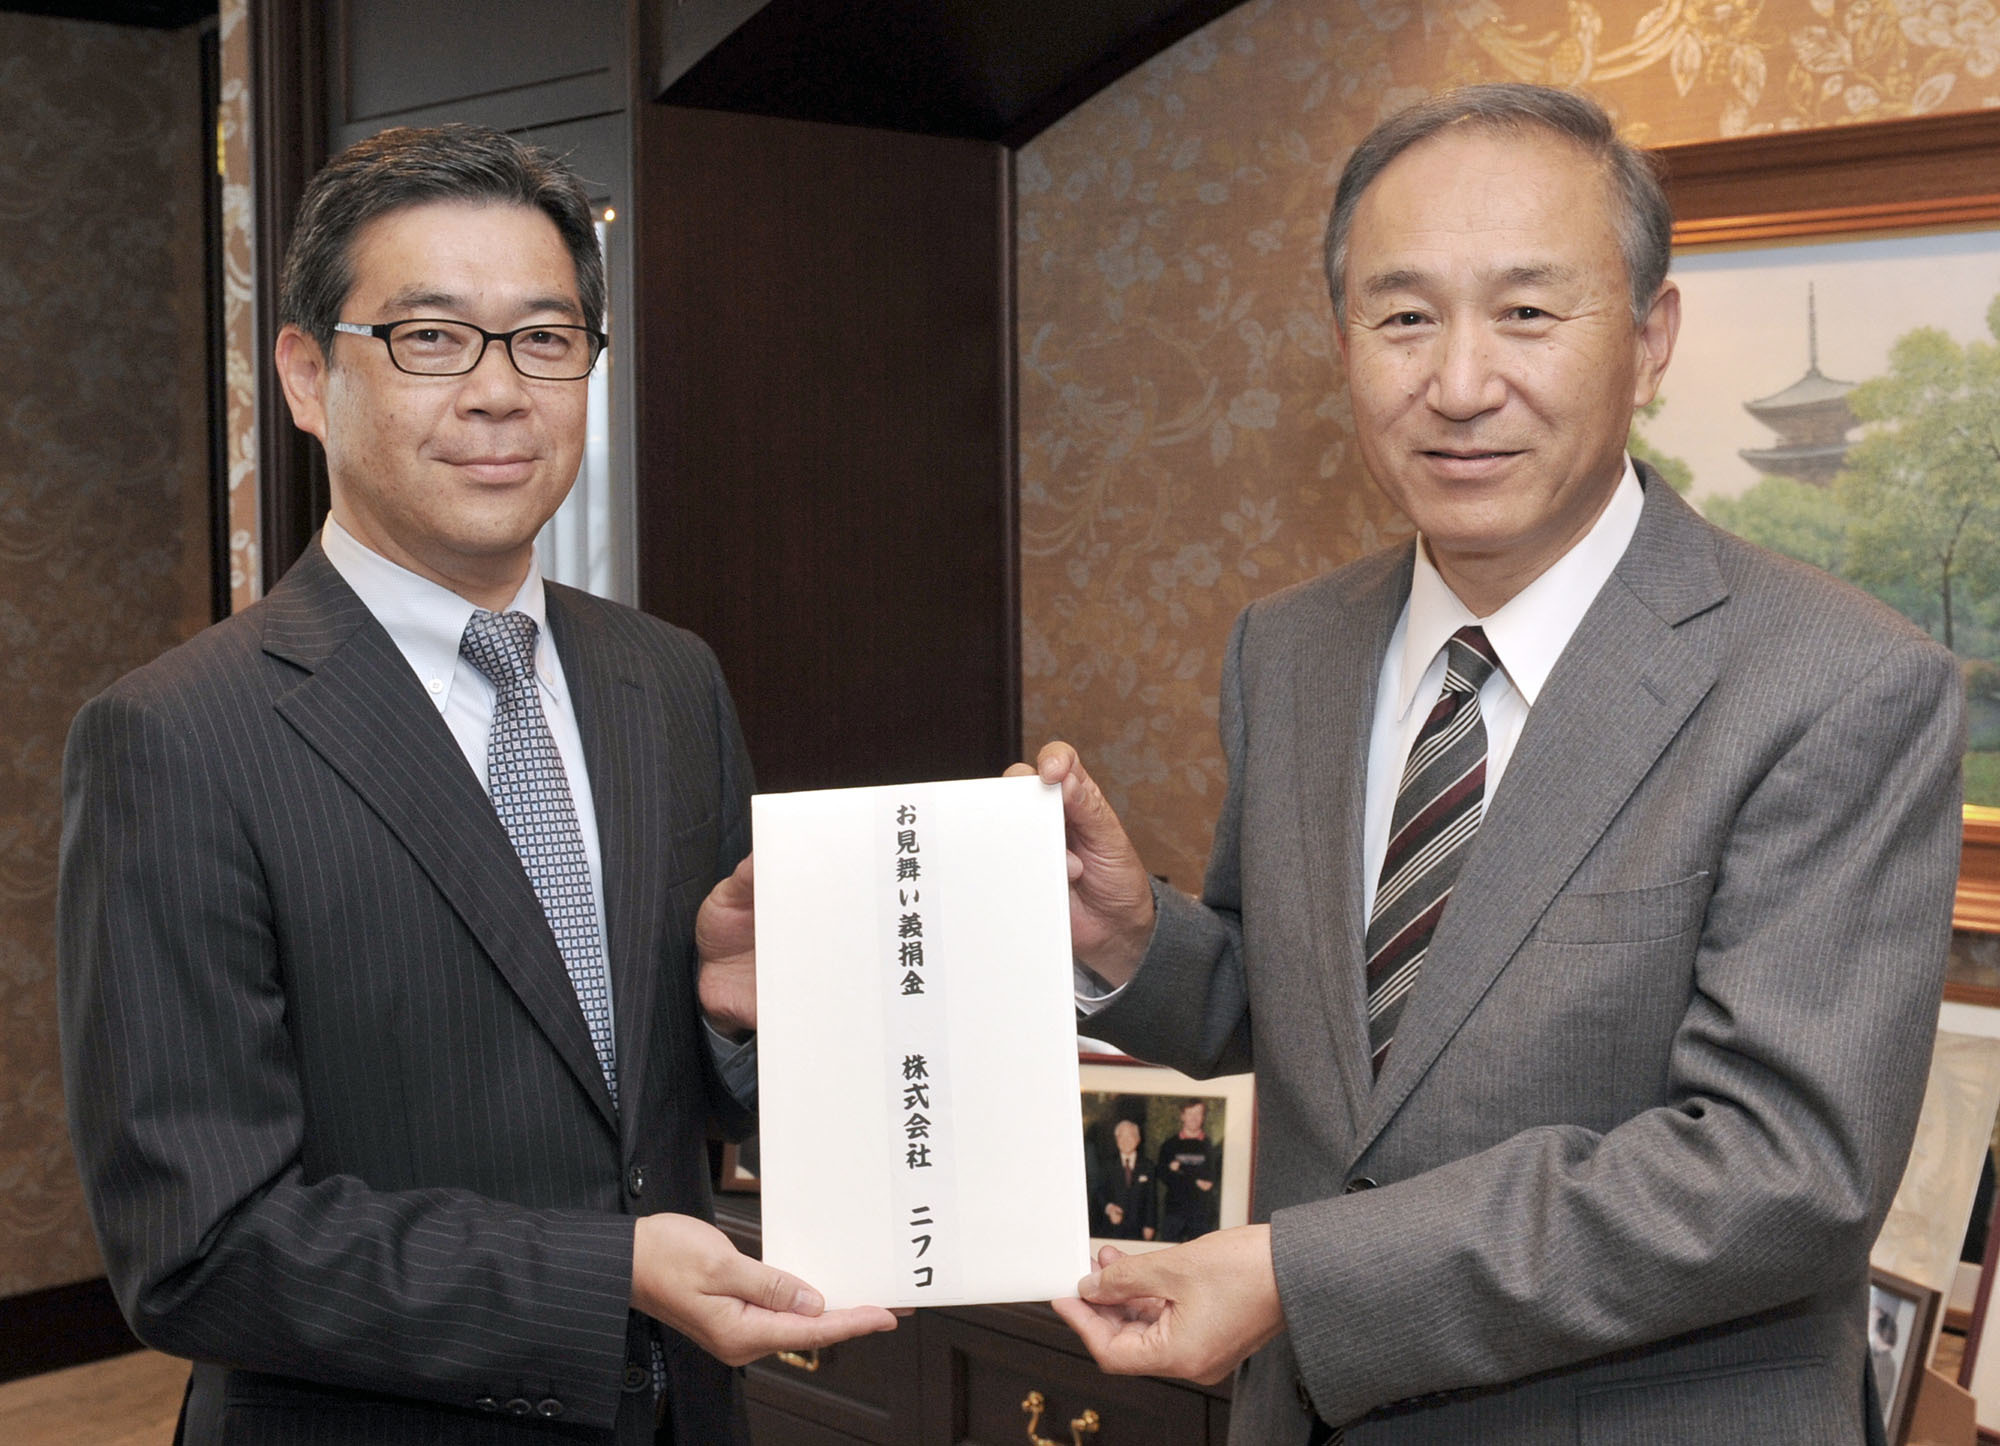 President, Representative Director and Chief Operating Officer of Nifco Inc. Toshiyuki Yamamoto (right) hands The Japan Times President Takeharu Tsutsumi a ¥10,000,000 donation for The Japan Times Readers' Fund that will go to support Kumamoto earthquake victims at the newspaper's headquarters in Tokyo on May 25. | YOSHIAKI MIURA